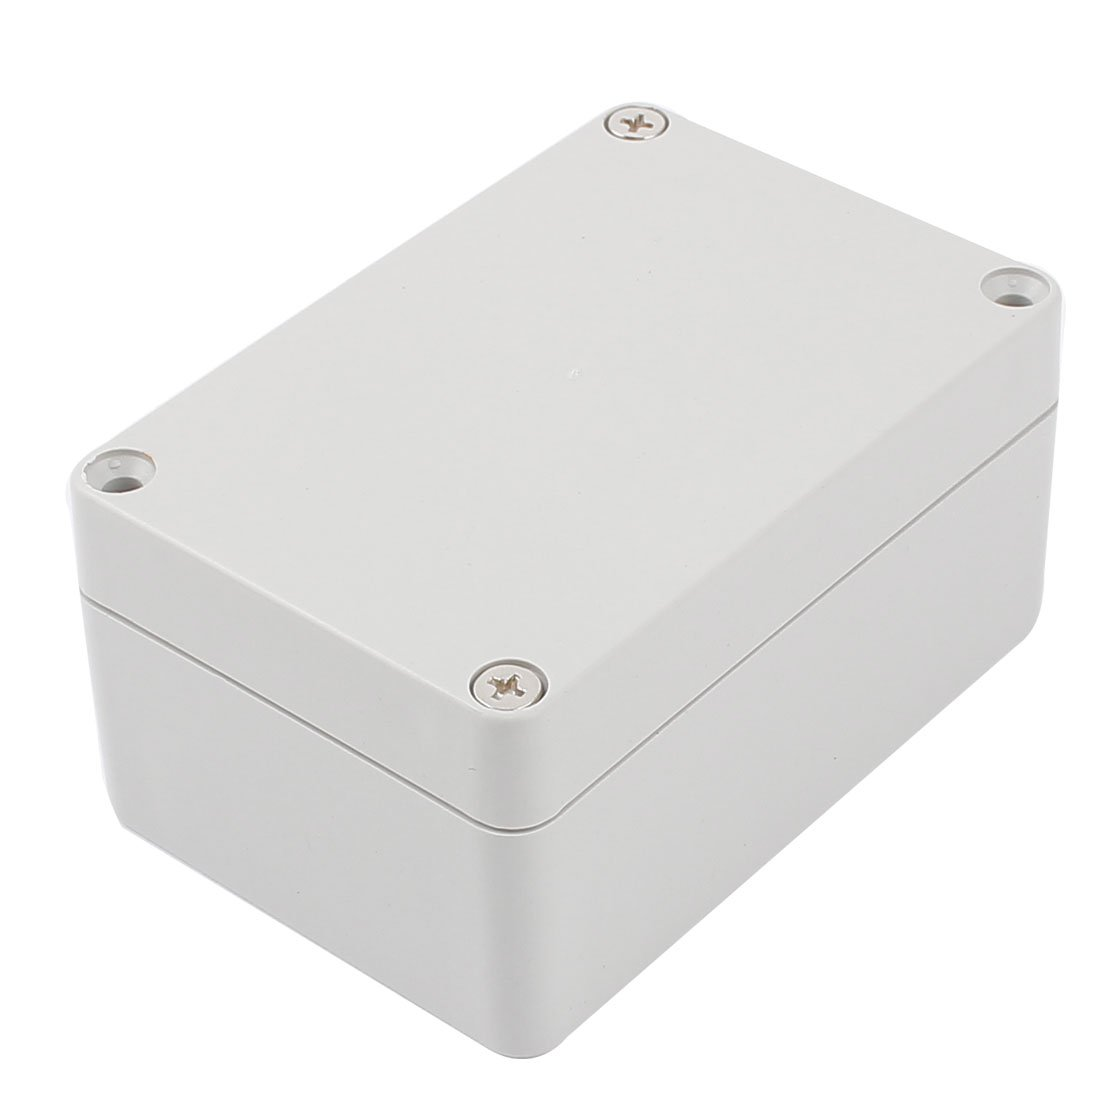 Uxcell a15101600ux0114 Outdoor Plastic Electrical Industrial Projector Enclosure Junction Box